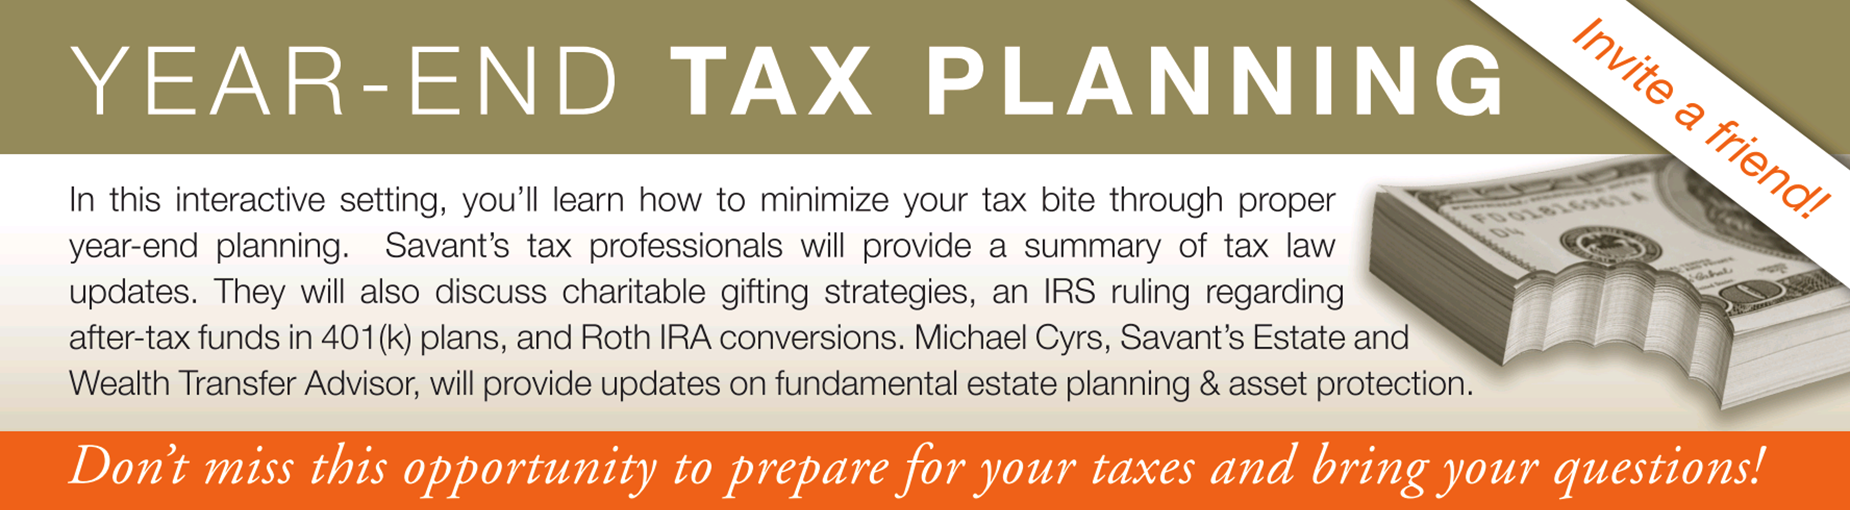 Year-End Tax-Planning Checklist for Small Businesses